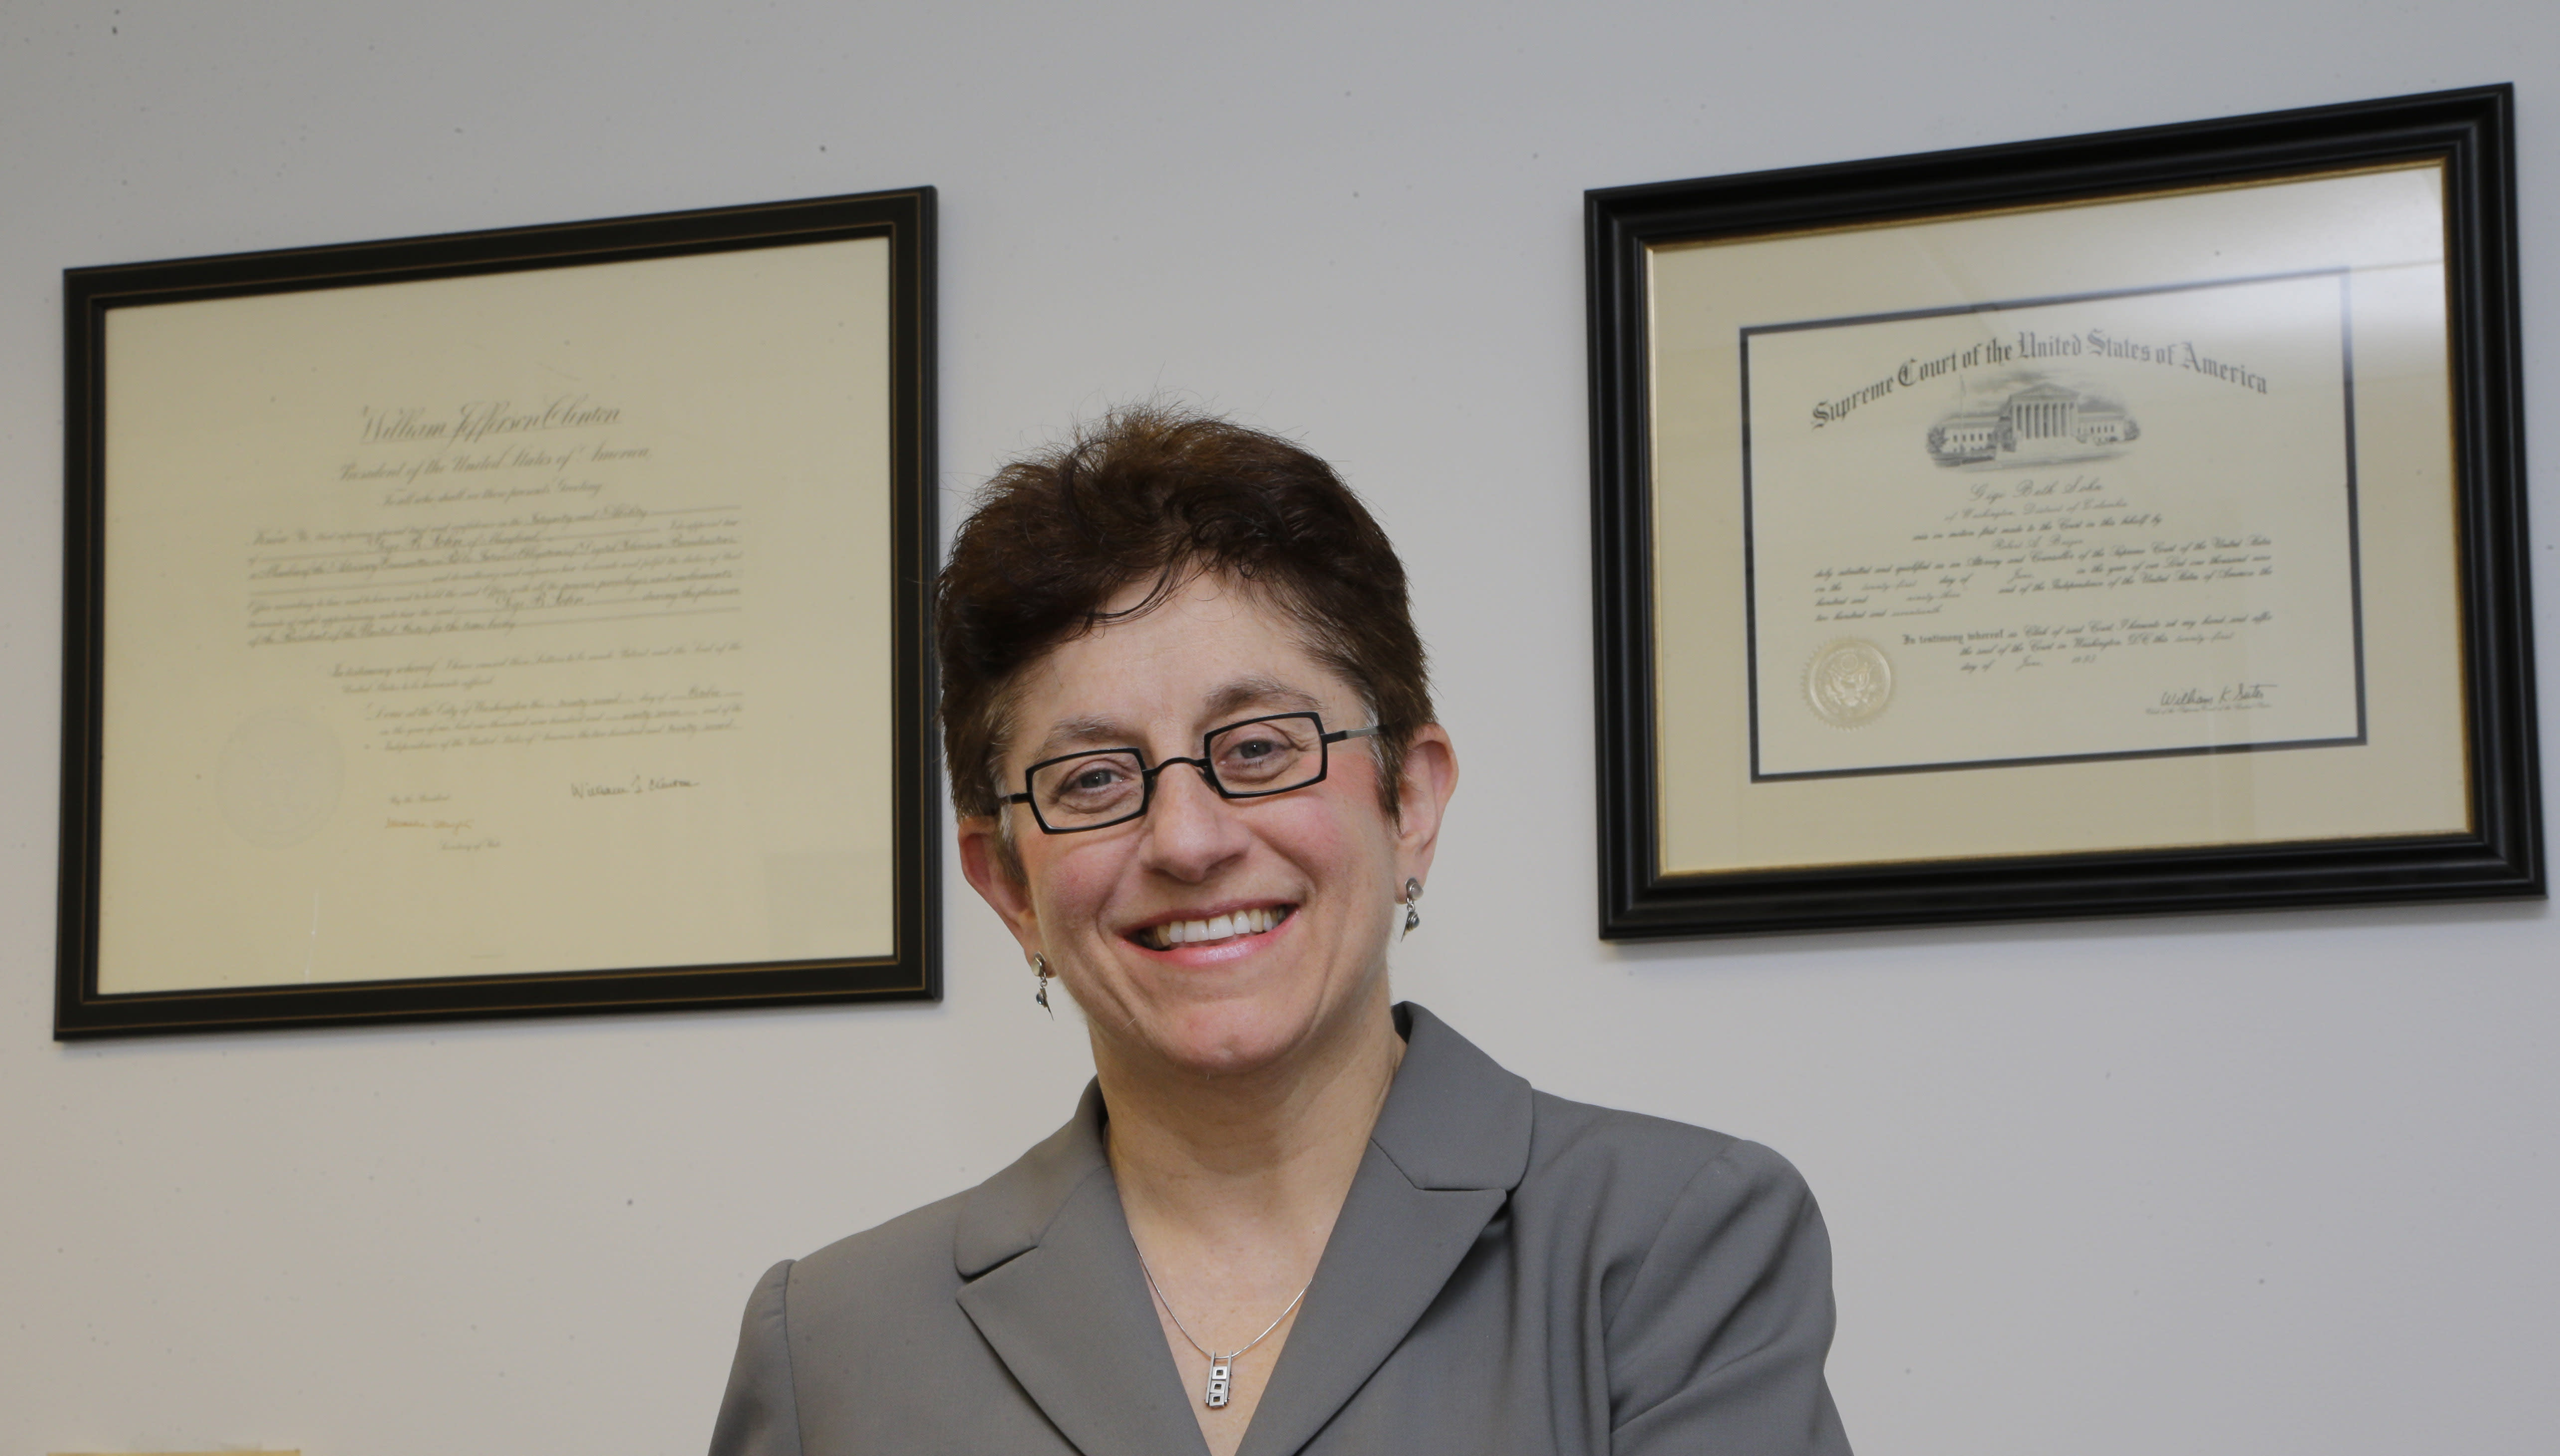 """In this Feb. 13, 2013, photo, Gigi Sohn, poses for a photograph with her certificate that says she is a member of the Supreme Court bar, in Washington. Only a few lawyers will ever get to argue before the U.S. Supreme Court. Every year, however, thousands of lawyers join the Supreme Court bar, the group of lawyers allowed to practice before the nation's highest court. Sohn said she joined the Supreme Court bar in 1993 because it seemed like fun. The membership fee has turned out to be the """"best $200 I've ever spent,"""" she said, """"because I've gotten access to top cases."""" (AP Photo/Alex Brandon)"""